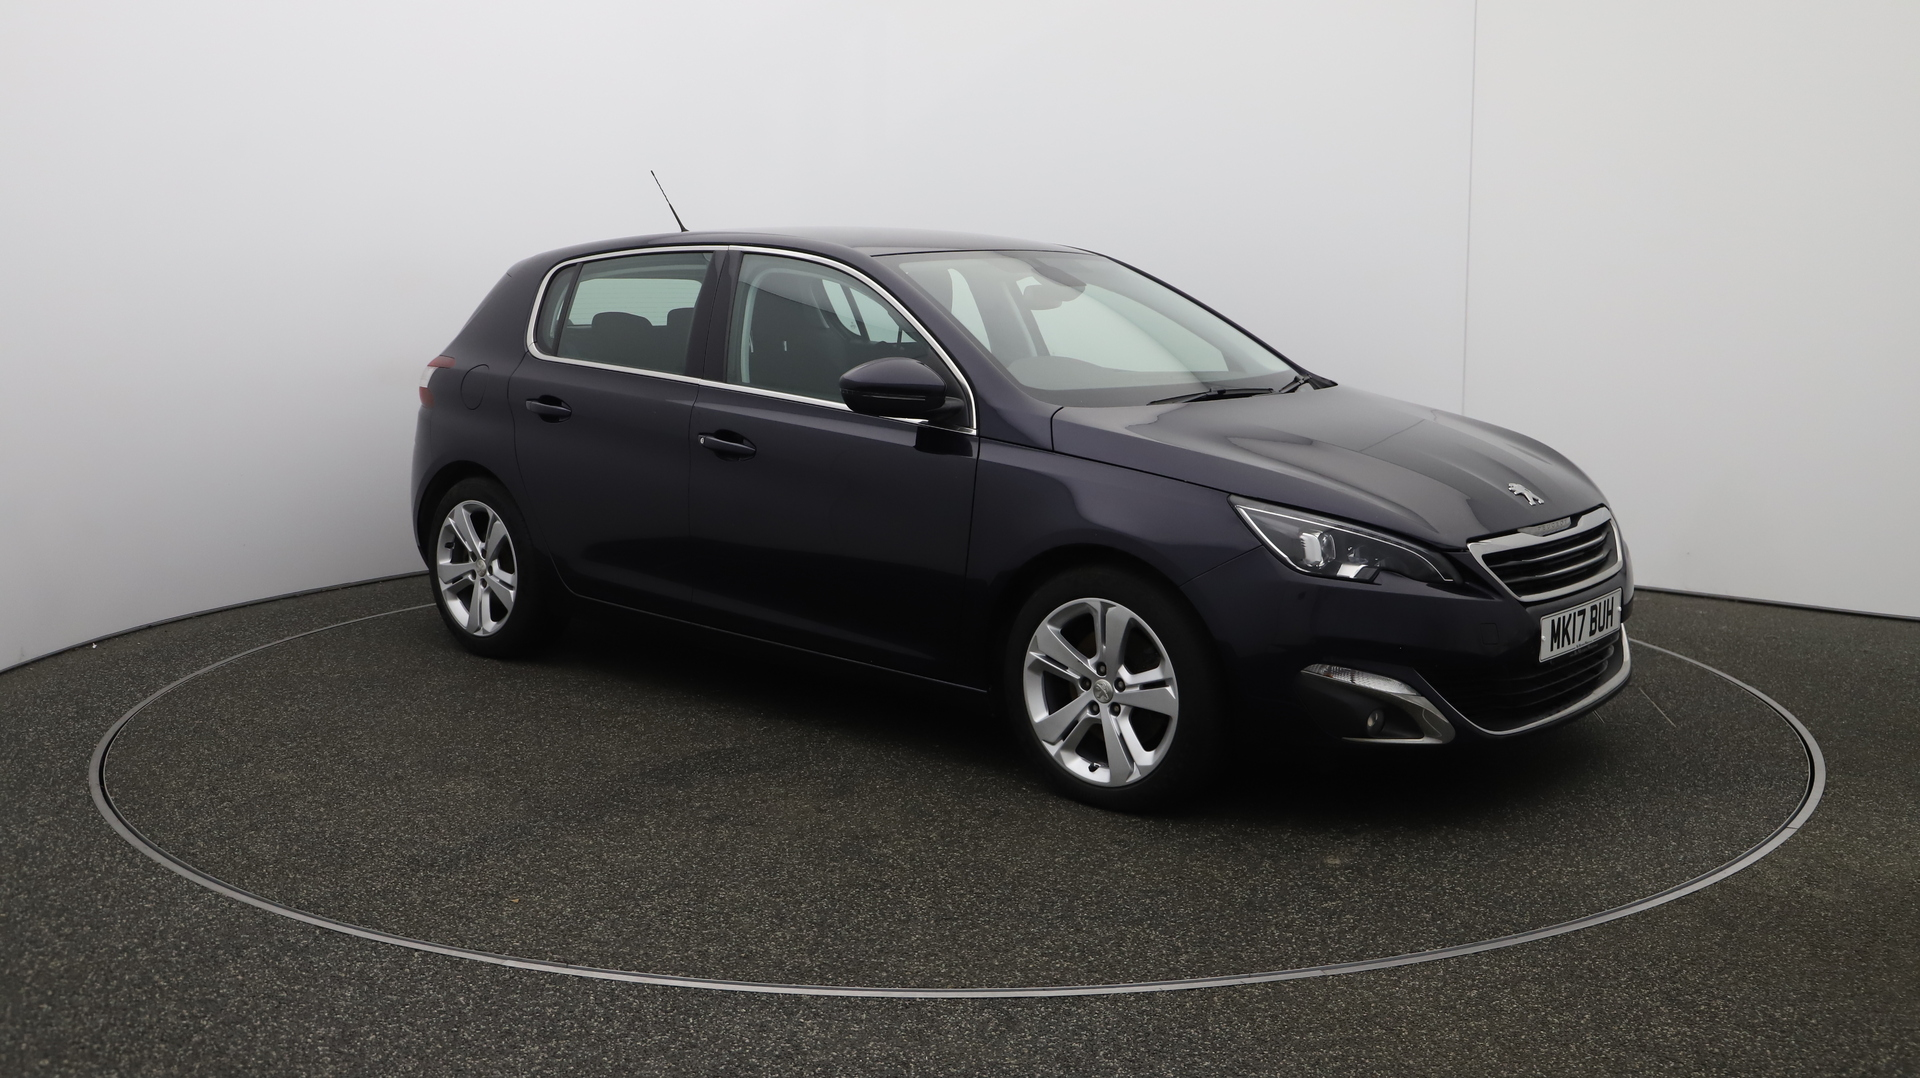 Peugeot 308 BLUE HDI S/S ALLURE Service History